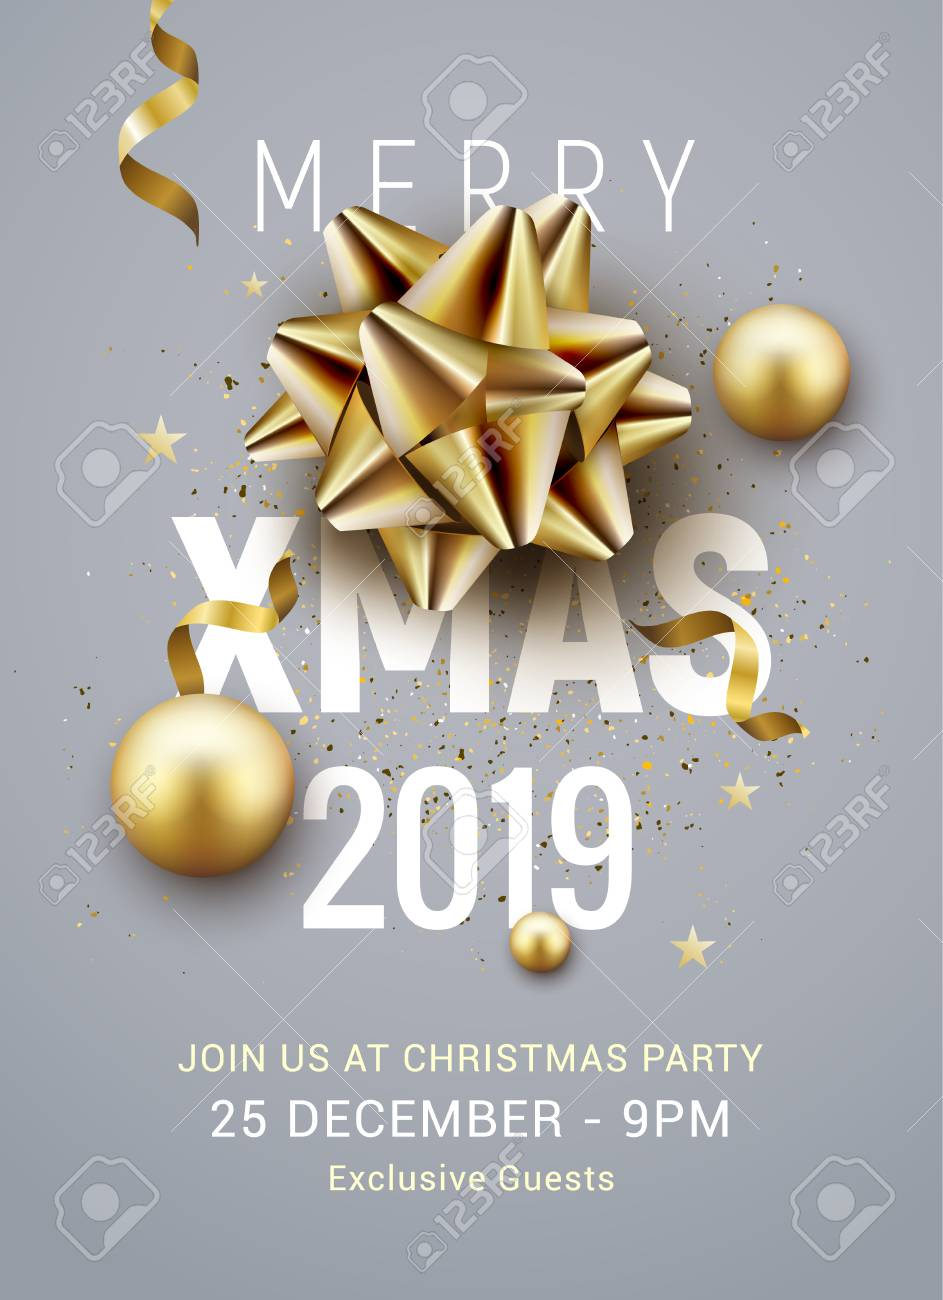 Christmas Party 2019 Clipart.Christmas Party Poster Template 2019 Christmas Gold Silver Balls